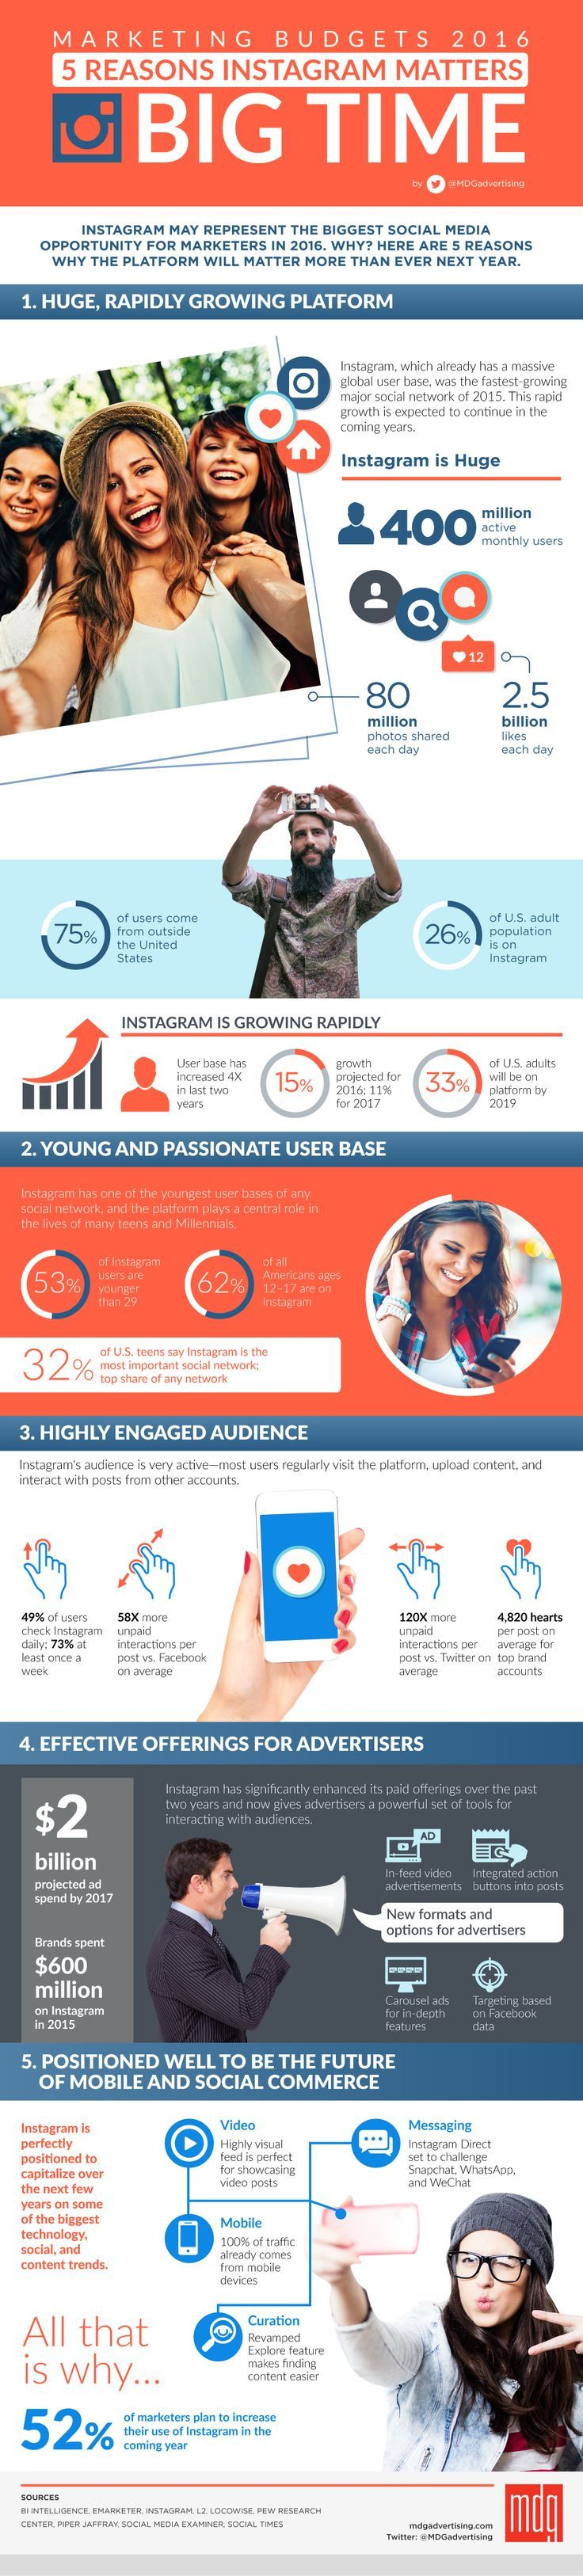 Social Media Marketing Budgets 2016: 5 Reasons Instagram Matters, Big Time - #infographic